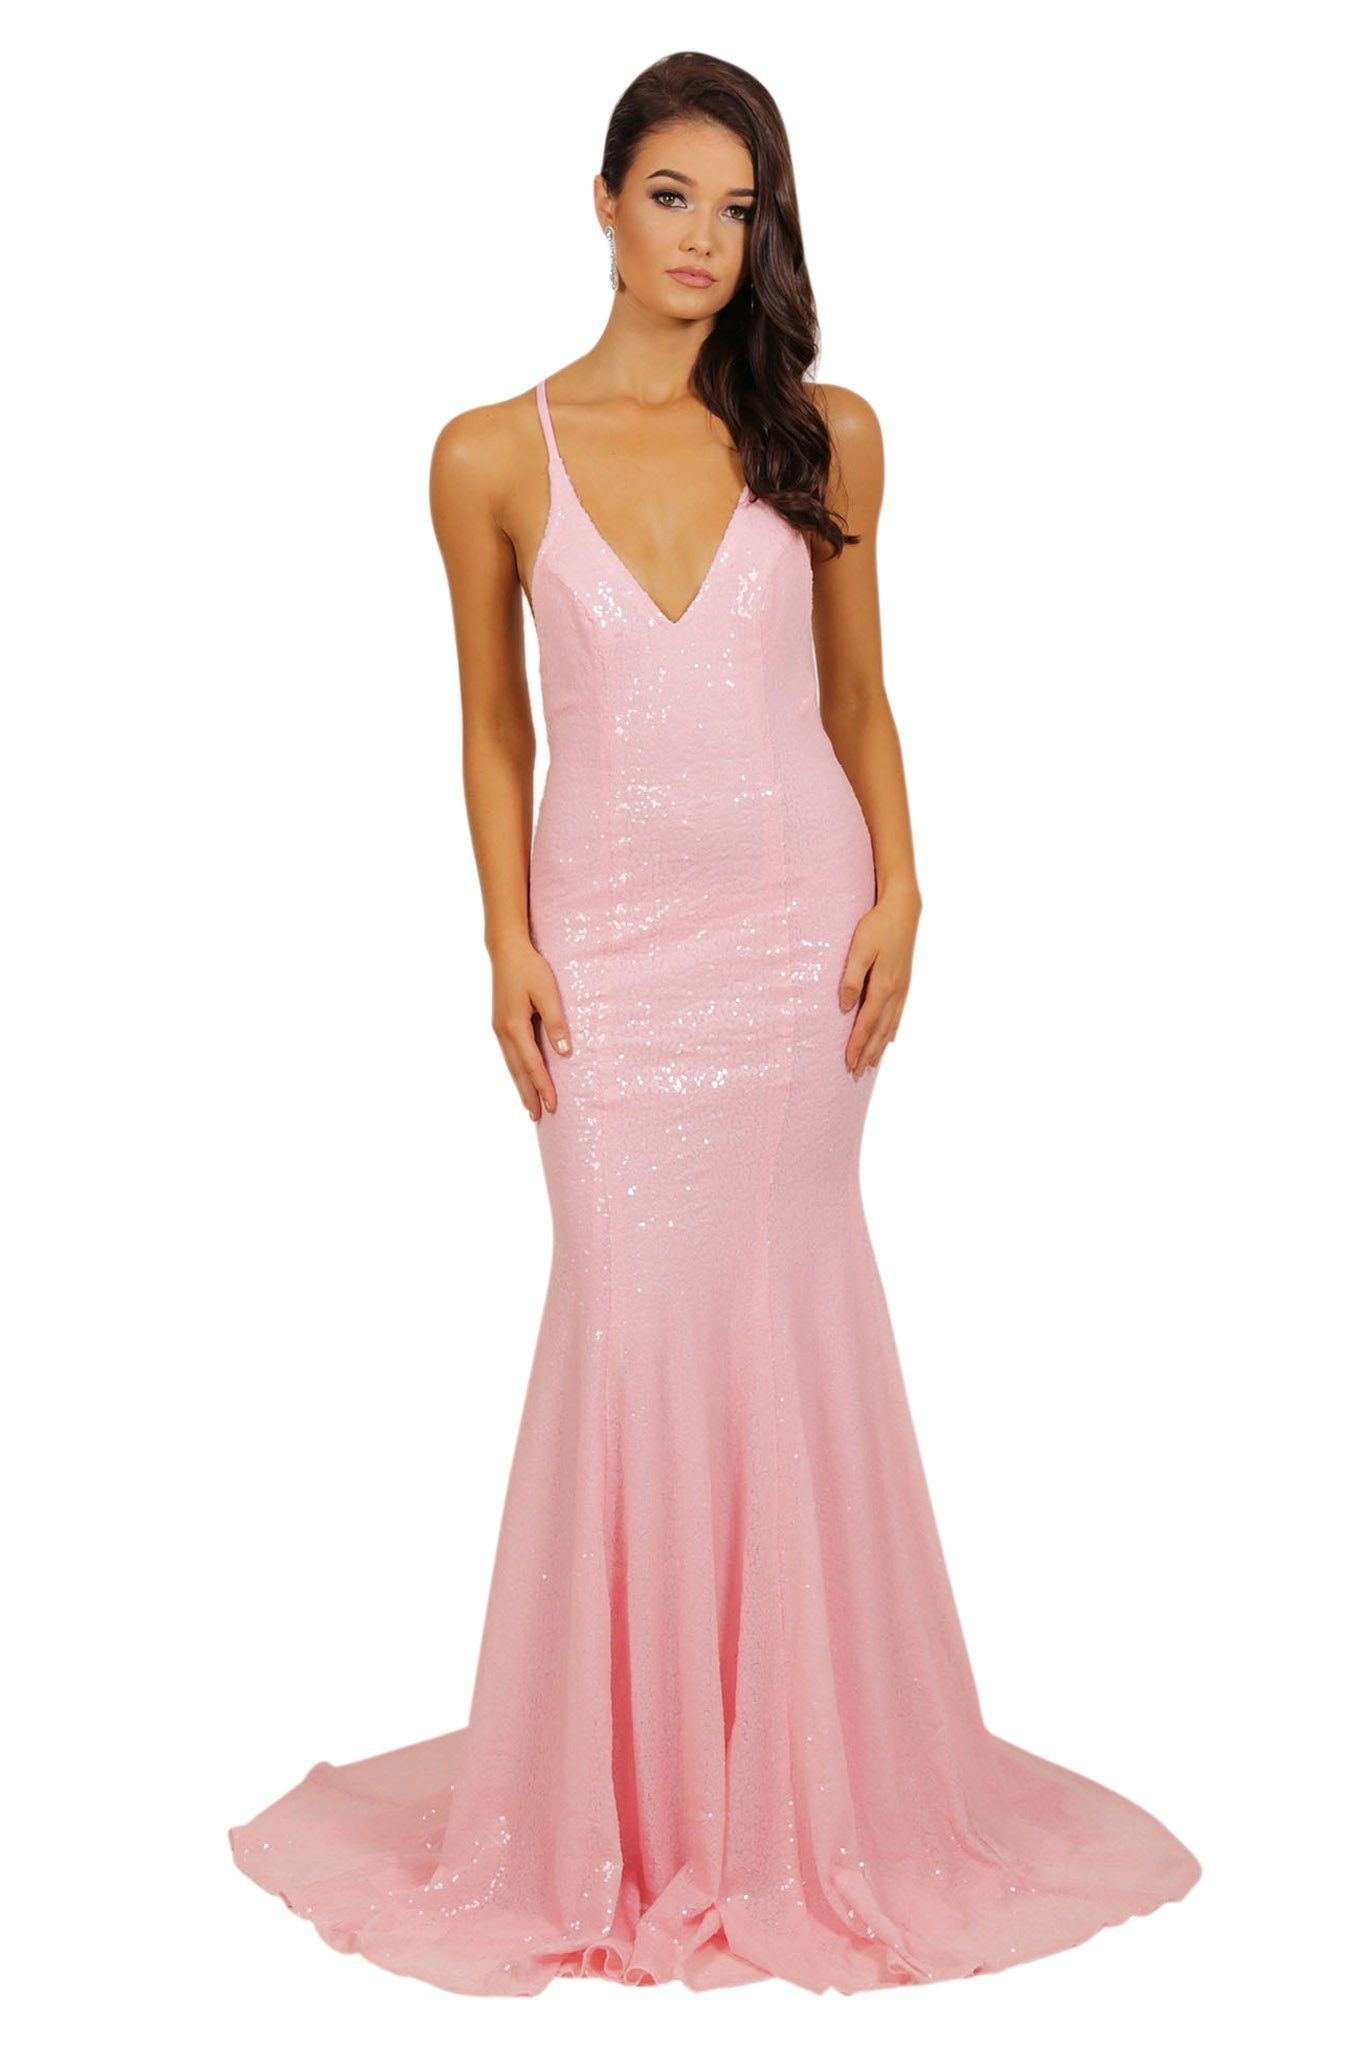 Front of baby pink sleeveless sequin long evening gown with deep V neckline, crisscross back straps on V open back, and long train